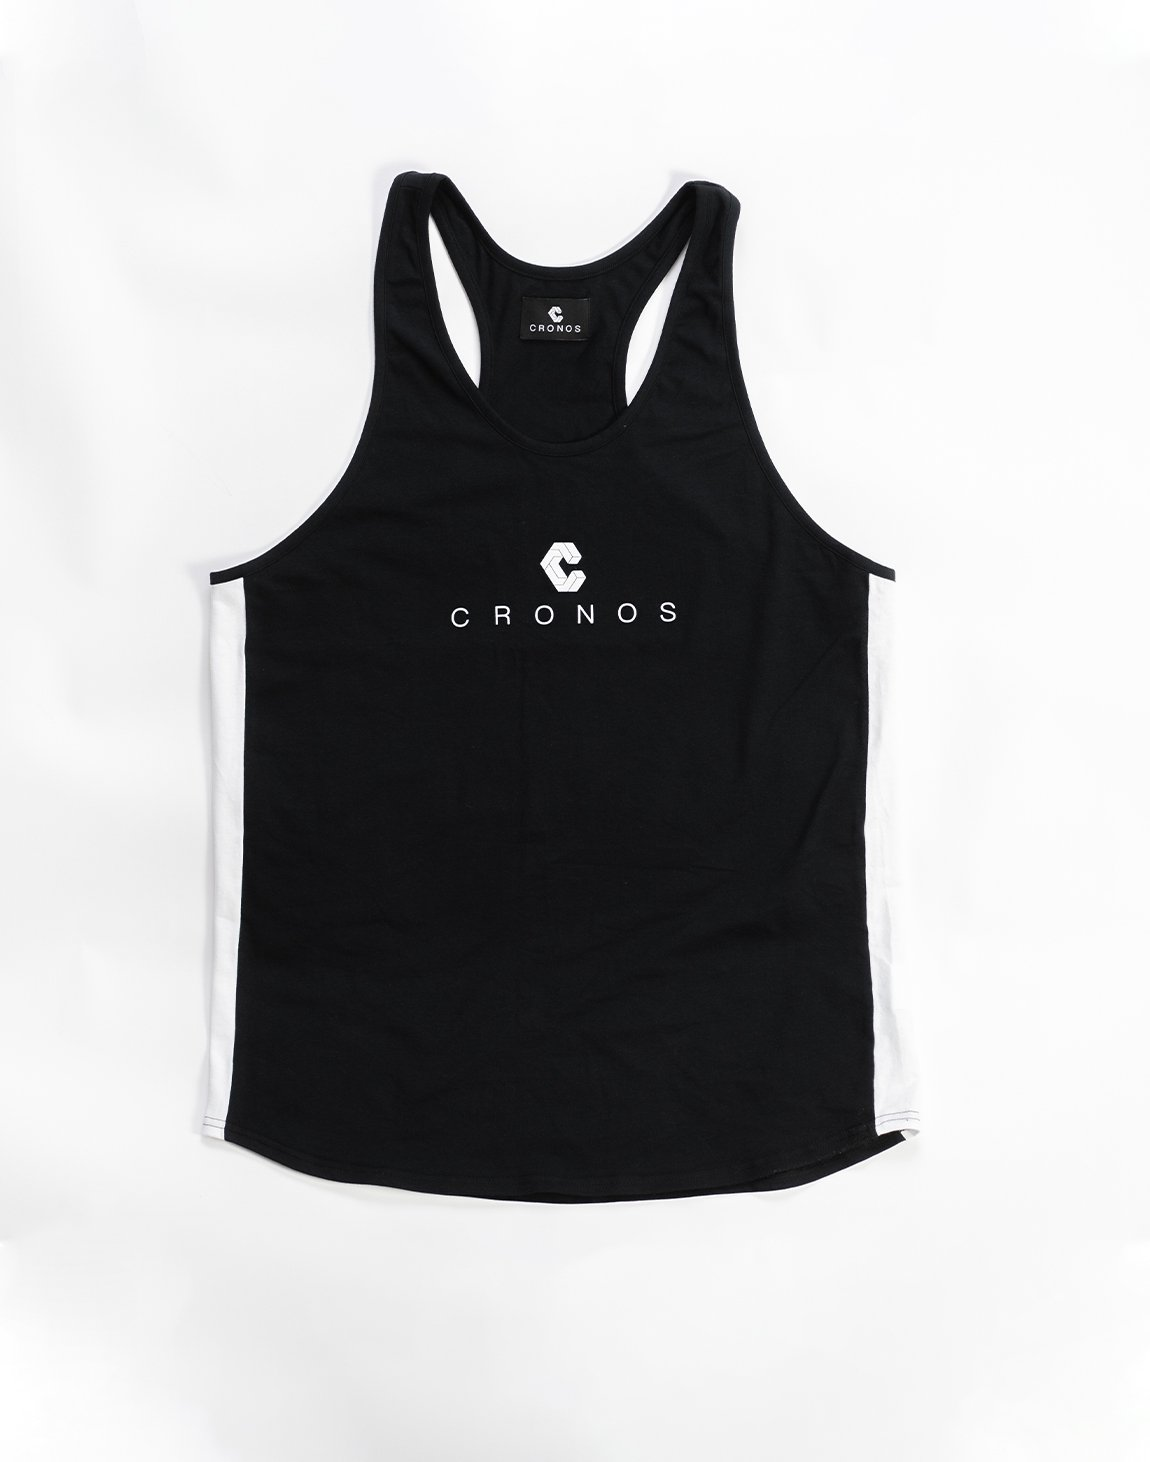 <img class='new_mark_img1' src='https://img.shop-pro.jp/img/new/icons1.gif' style='border:none;display:inline;margin:0px;padding:0px;width:auto;' />CRONOS SIDE COLOR   TANKTOP BLACK&WHITE